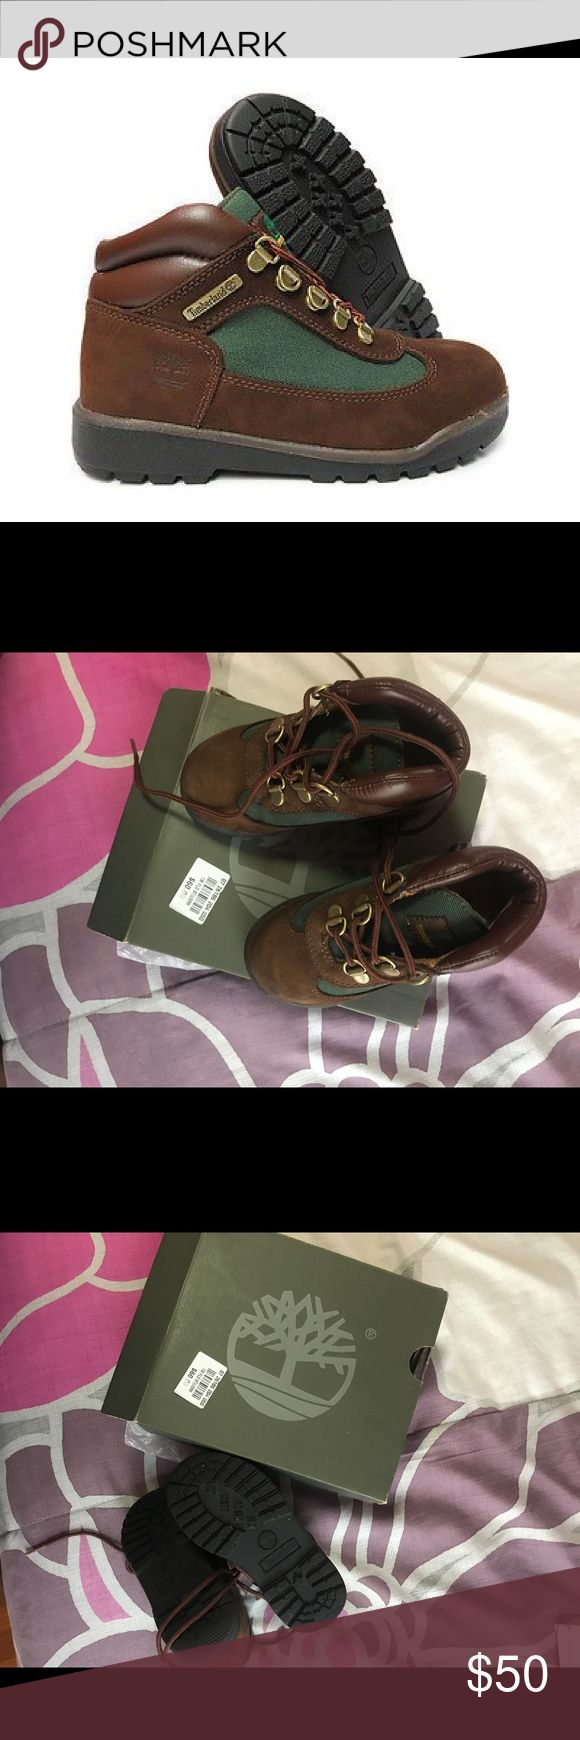 Timberland field boot brown green Tims Only worn once. Excellent condition bundle for saving or feel free to make an offer. Listed as girls but can fit boys also as these boots are gender neutral Timberland Shoes Boots